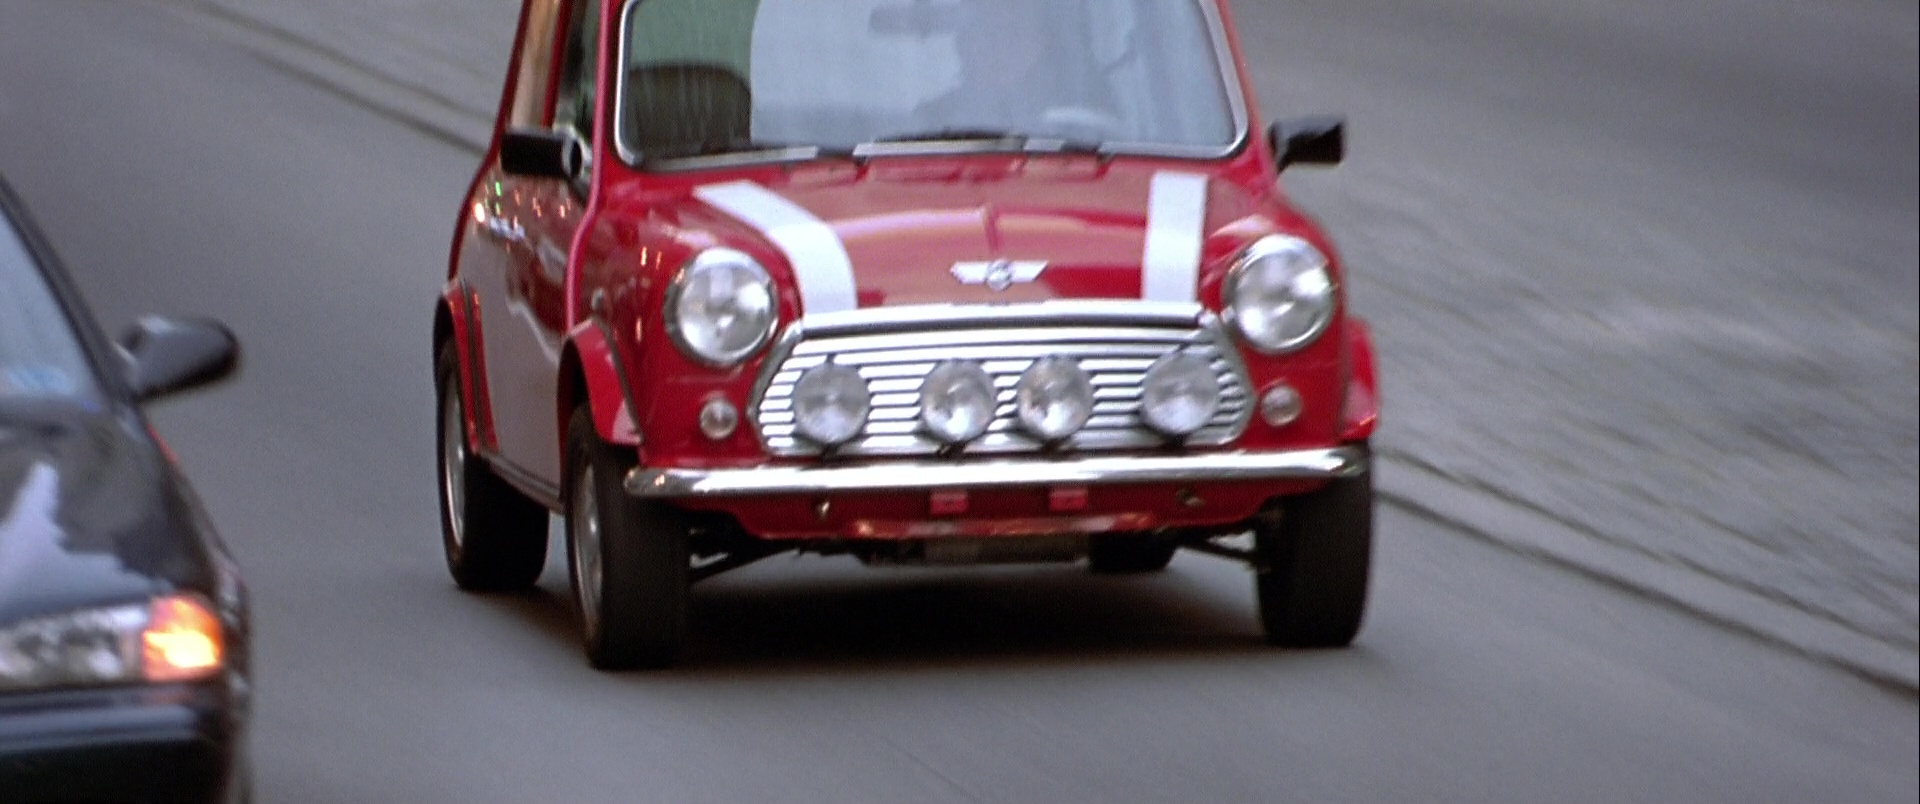 Rover Mini Cooper Mkvii Used By Charlize Theron In The Italian Job 2003 Movie